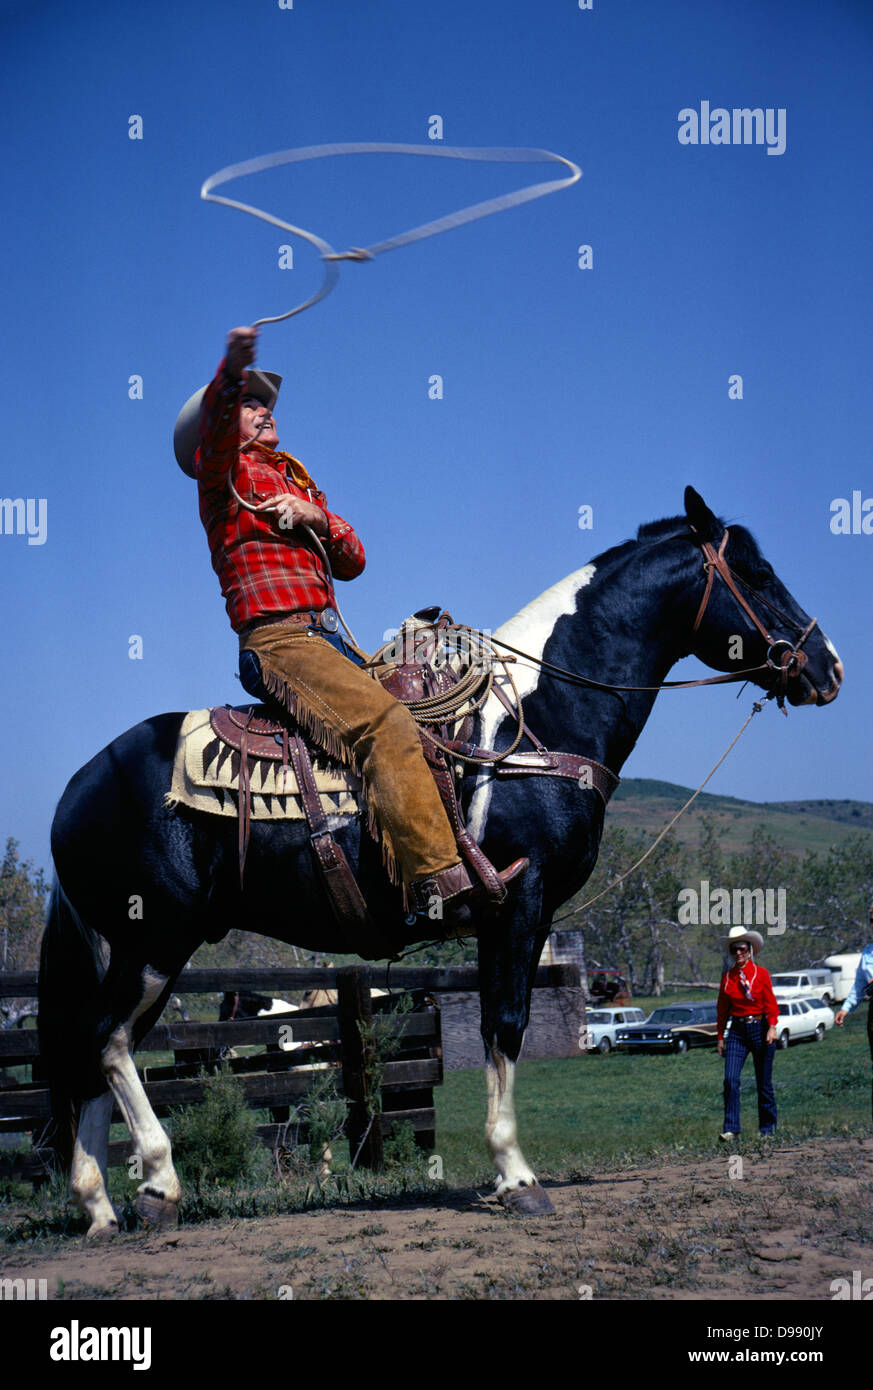 Famous cowboy, actor, and stuntman Montie Montana practices on horseback with his roping lariat prior to a rodeo - Stock Image